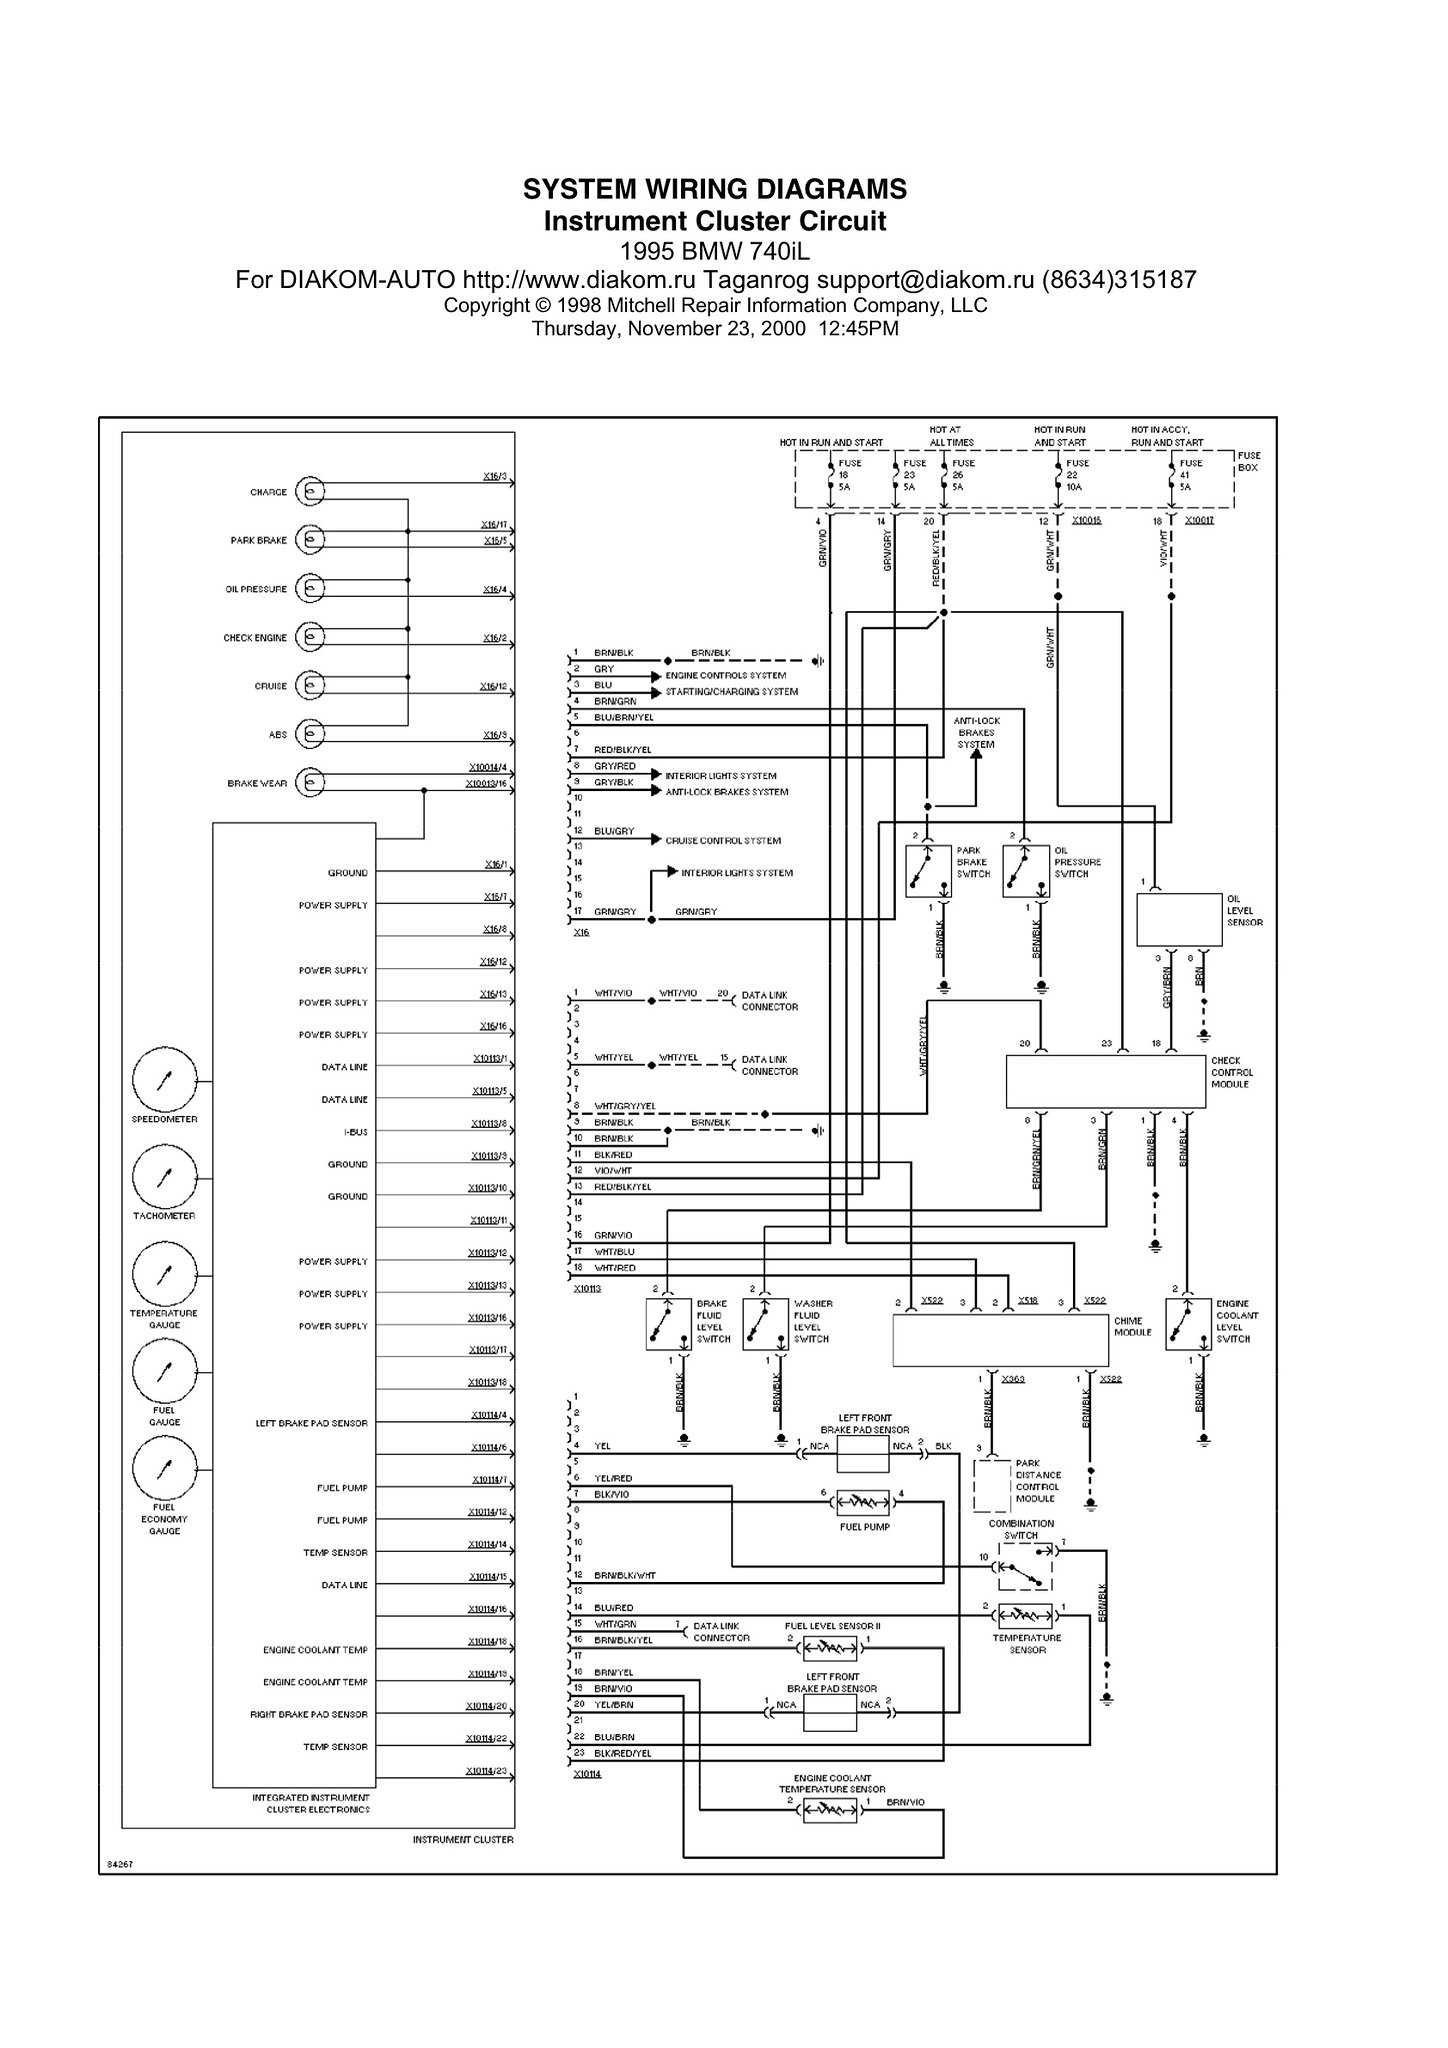 Bmw E39 Wiring Diagram Free For You 1979 Corvette Harness Download Schematic Instrument Cluster E46 45 Webasto Key To Circuits